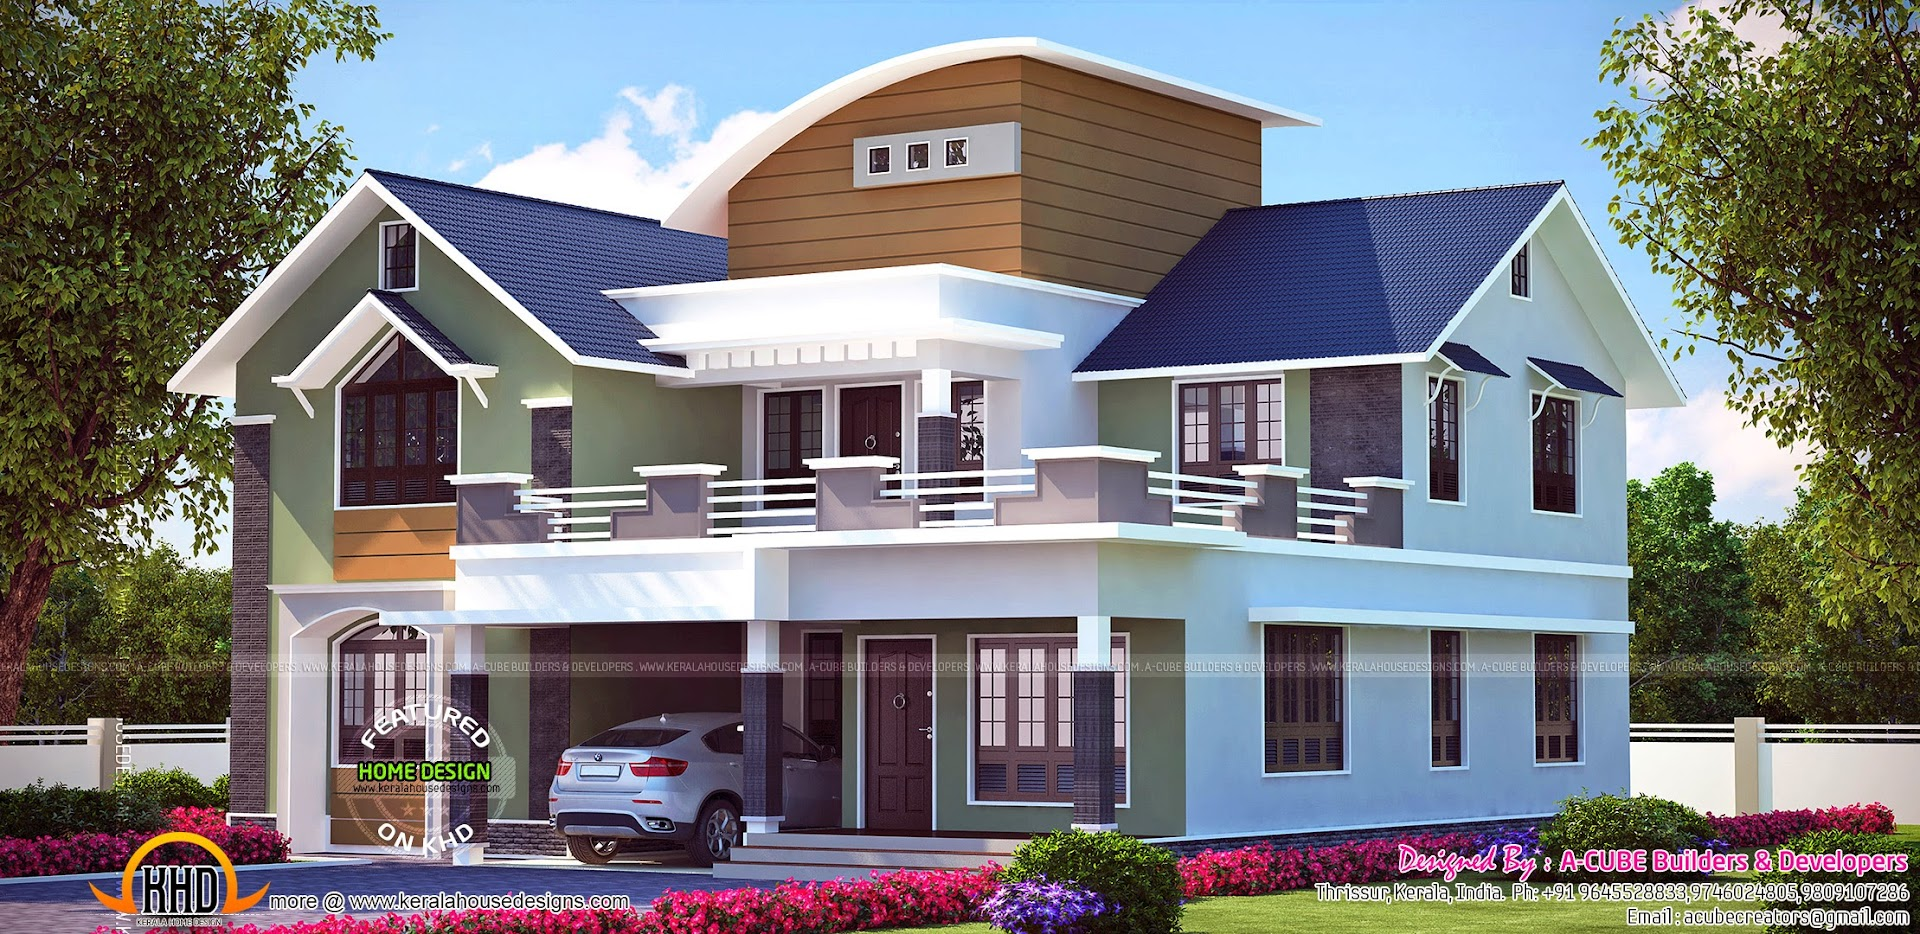 Beautiful kerala house plan kerala home design and floor plans - Kerala beautiful house ...